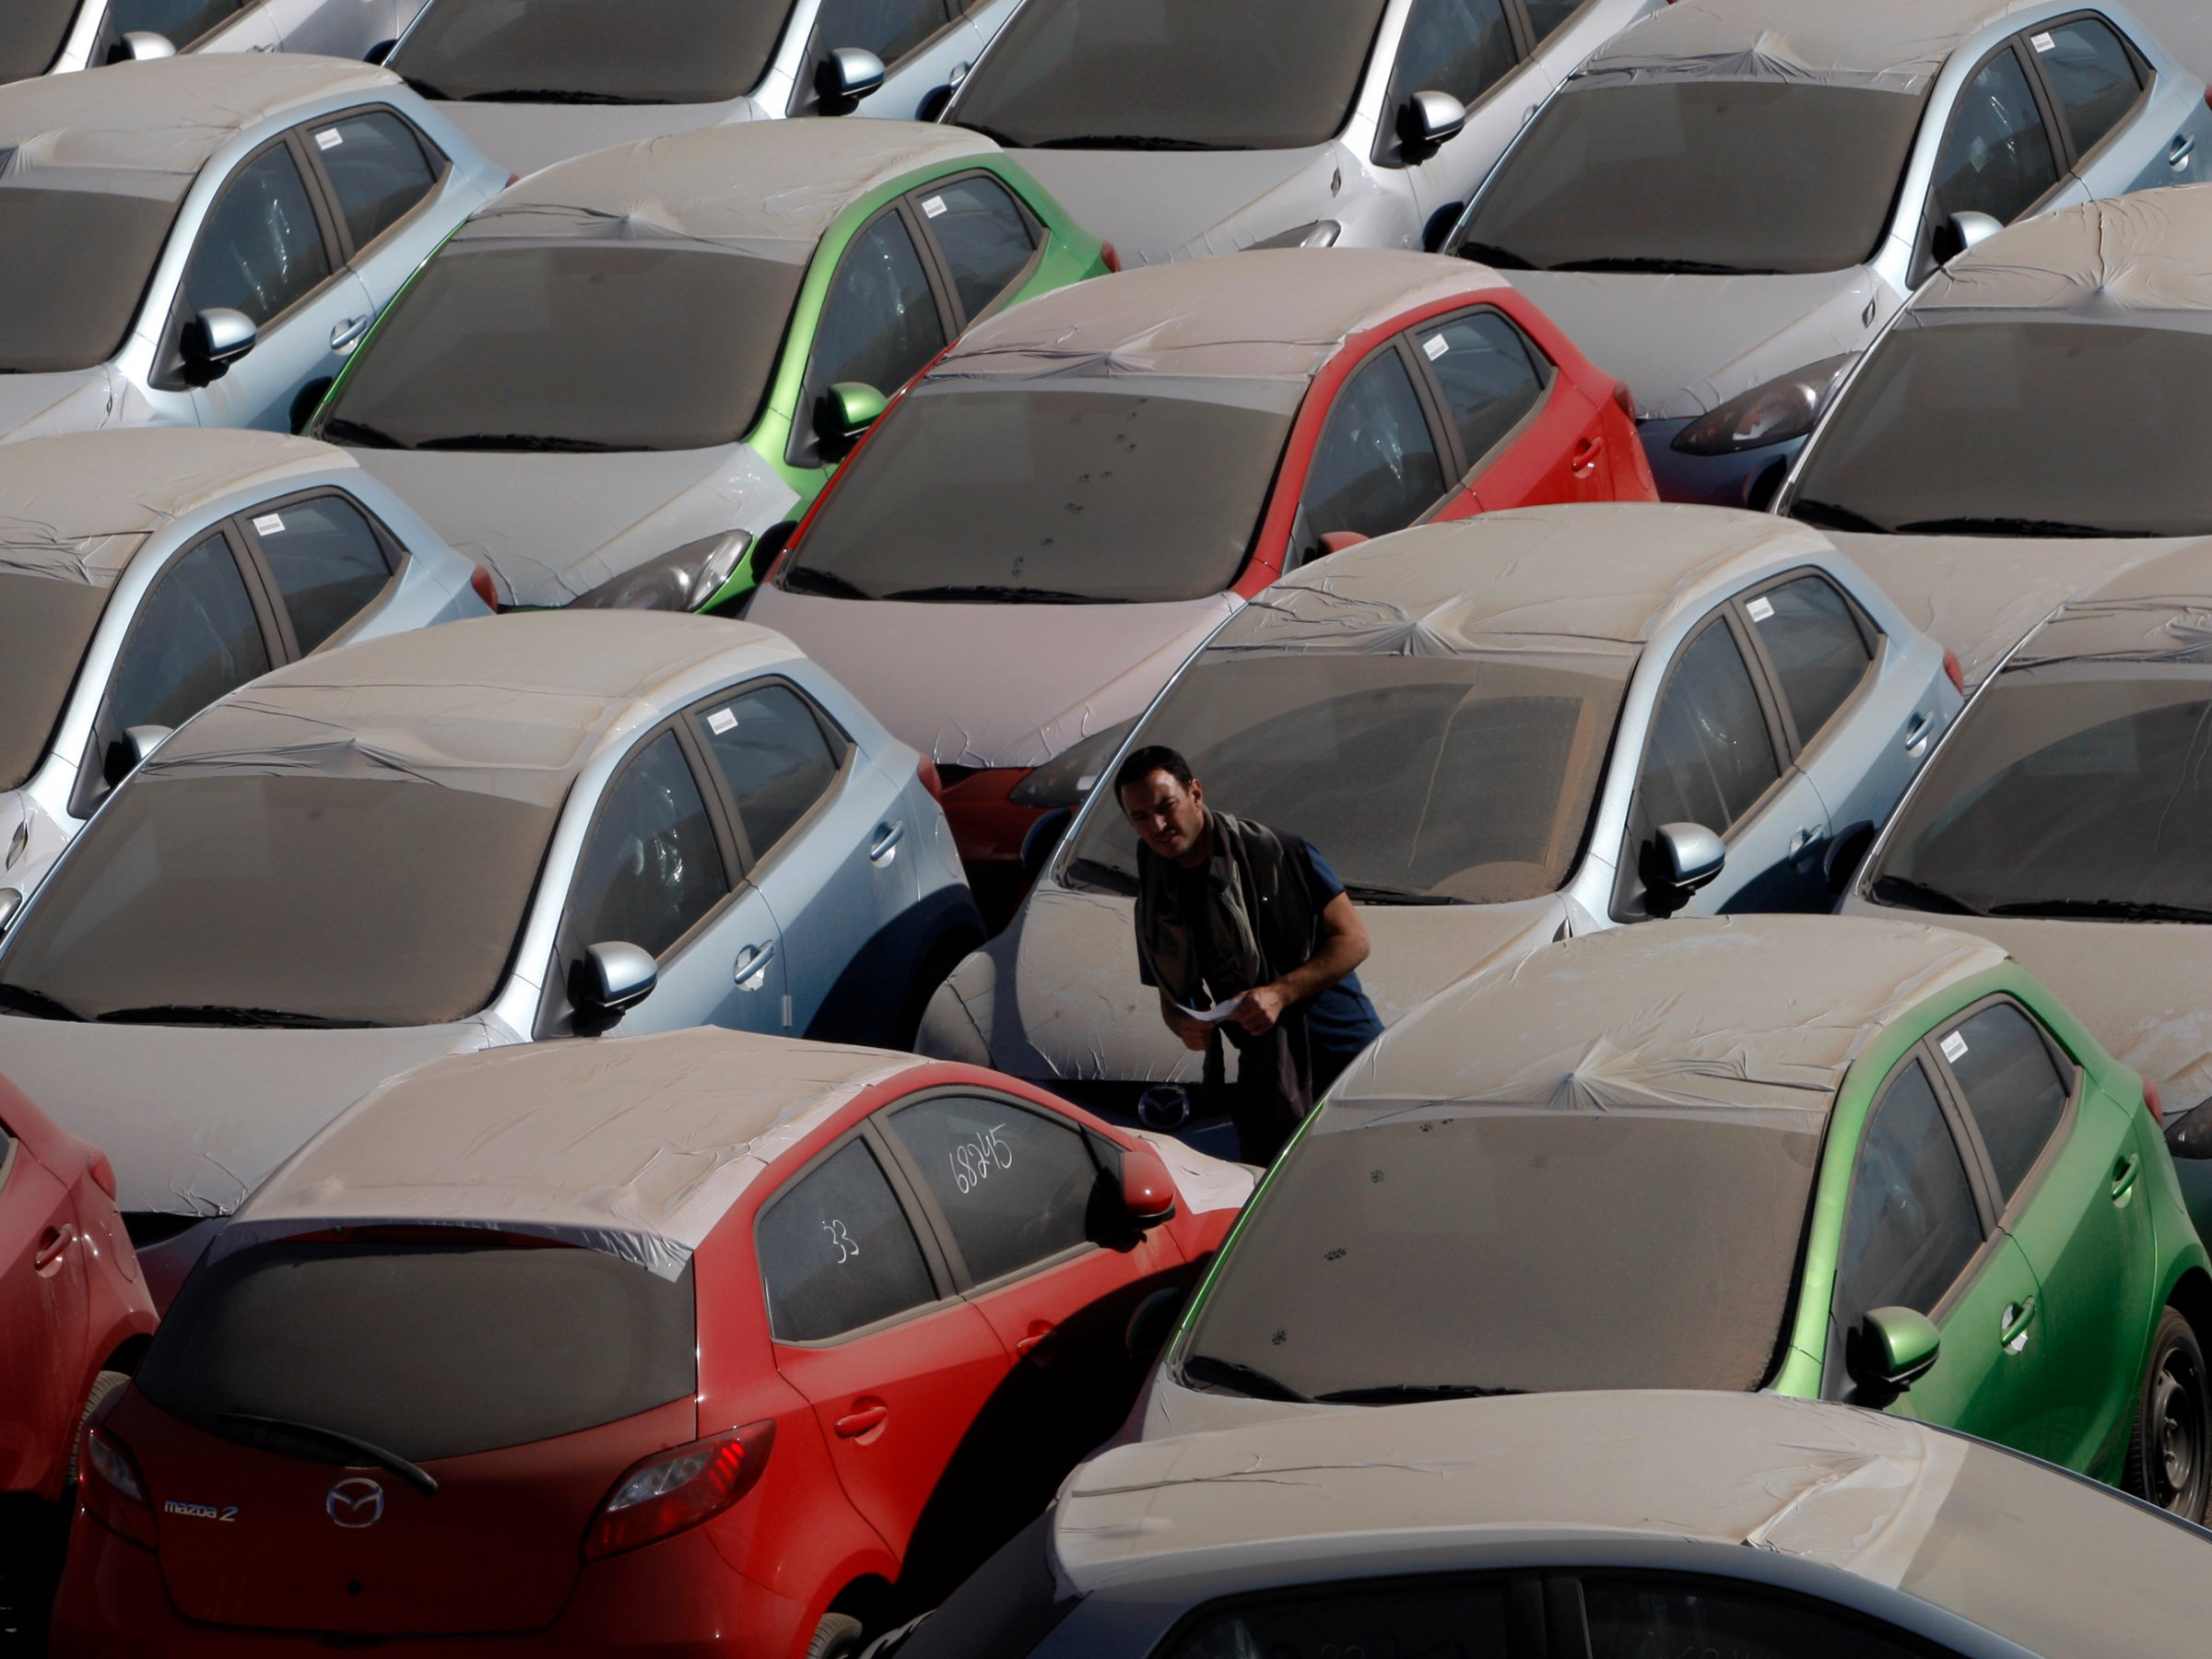 used cars reuters baz ratner